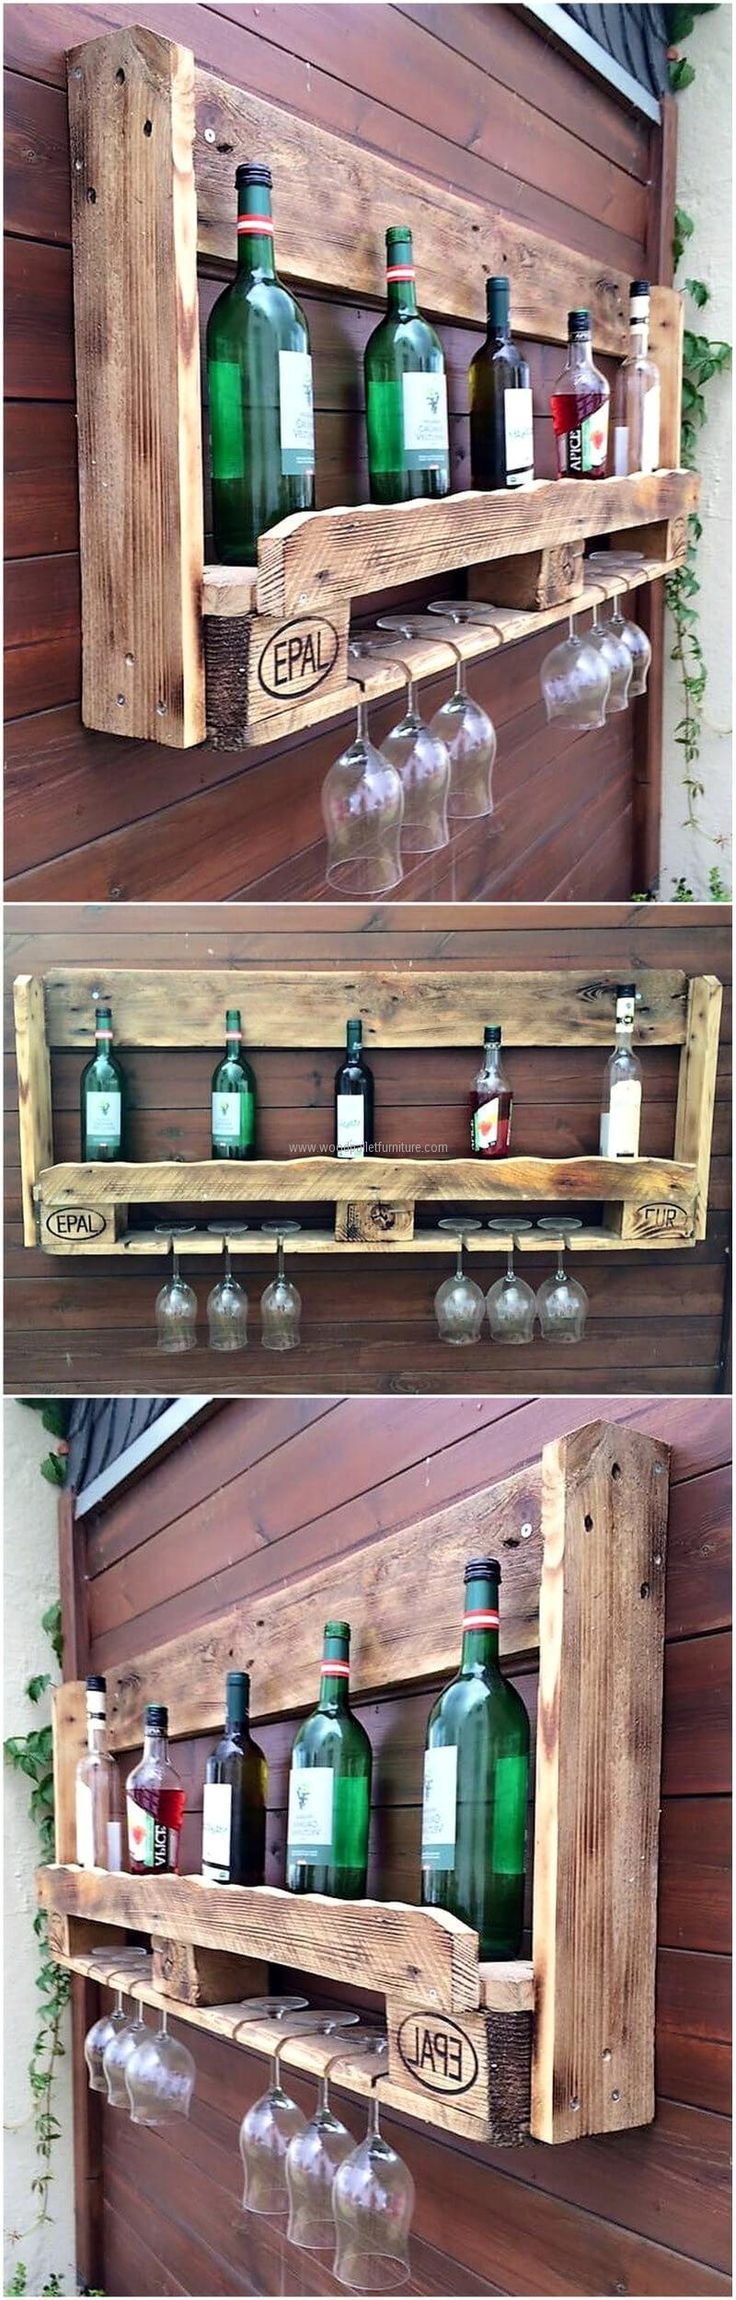 pallet wall bar idea